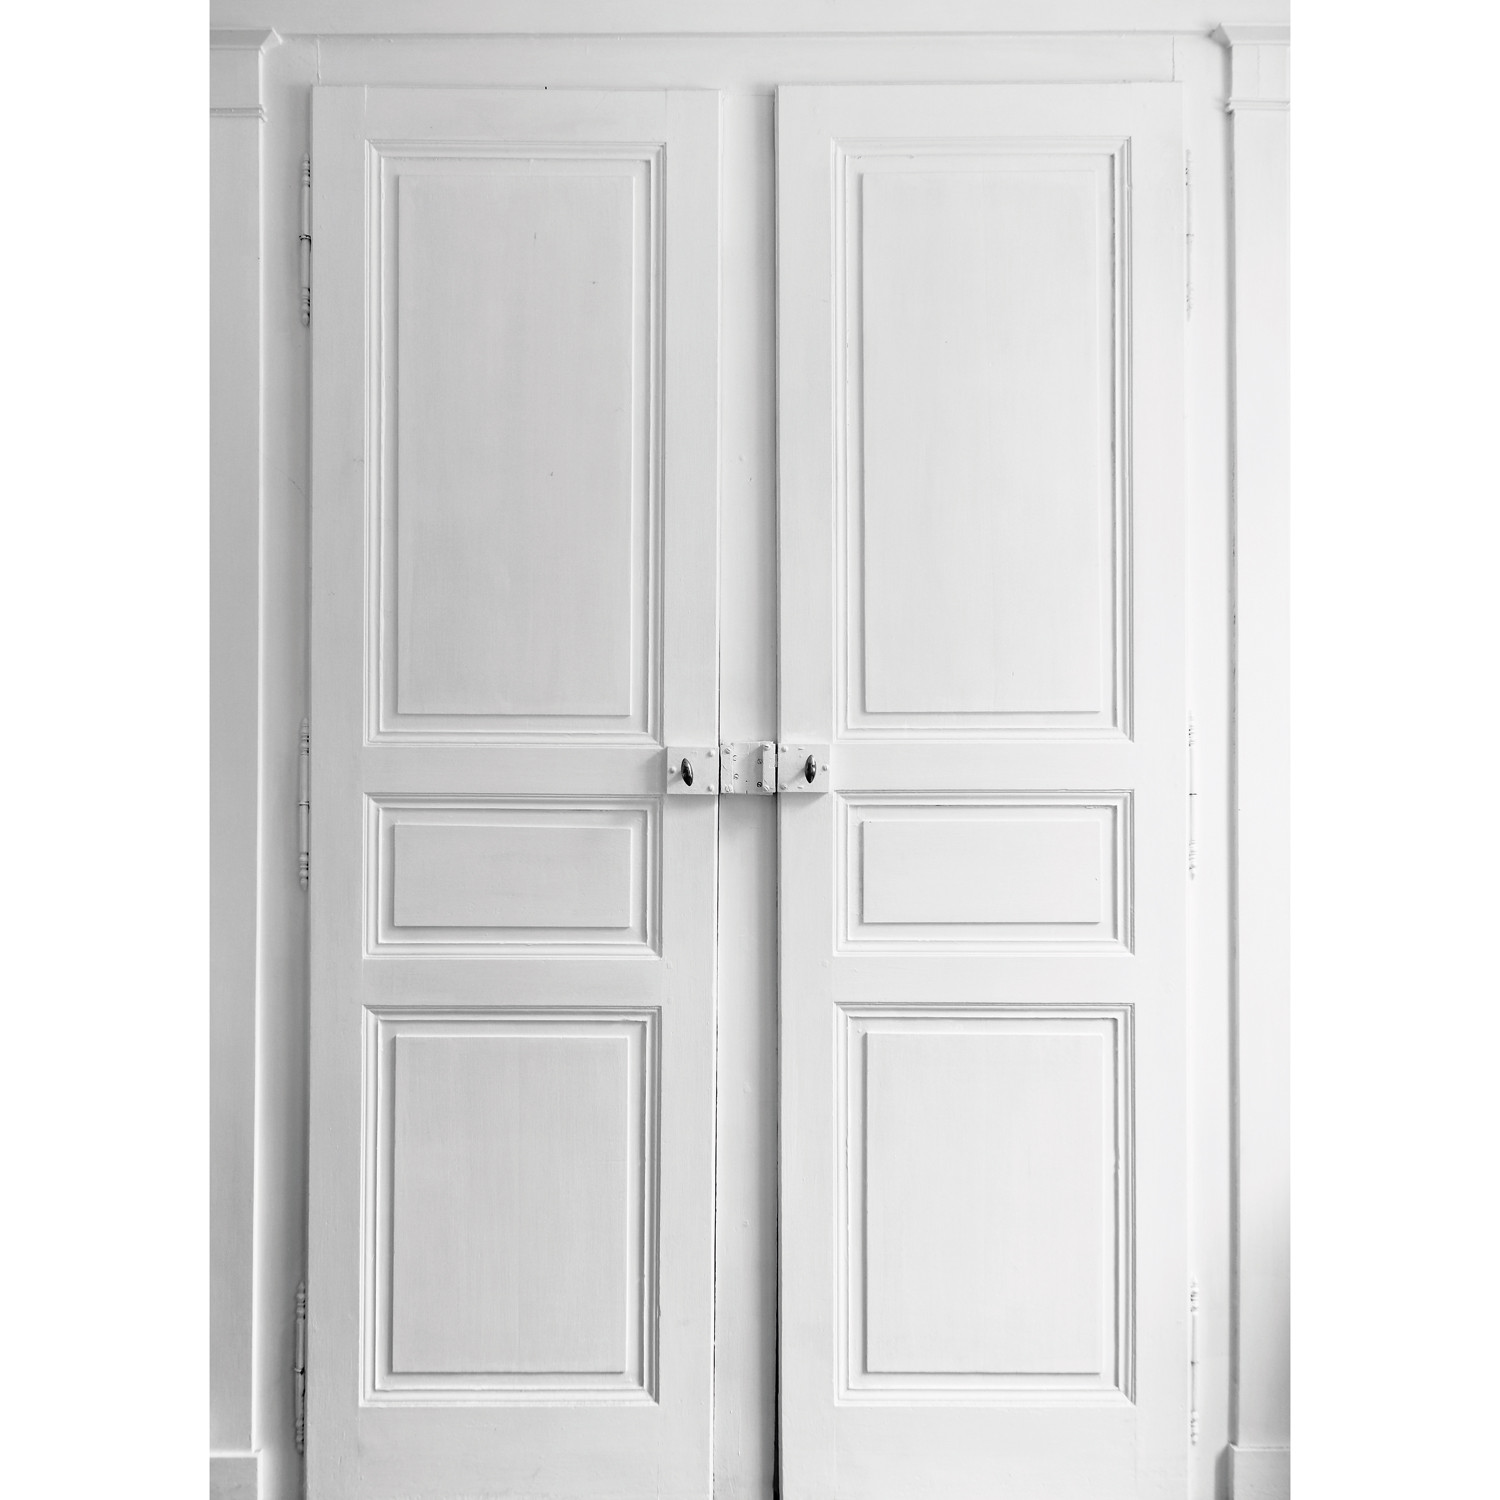 Trompe l 39 oeil double porte ohmywall touch of modern for Porte moderne